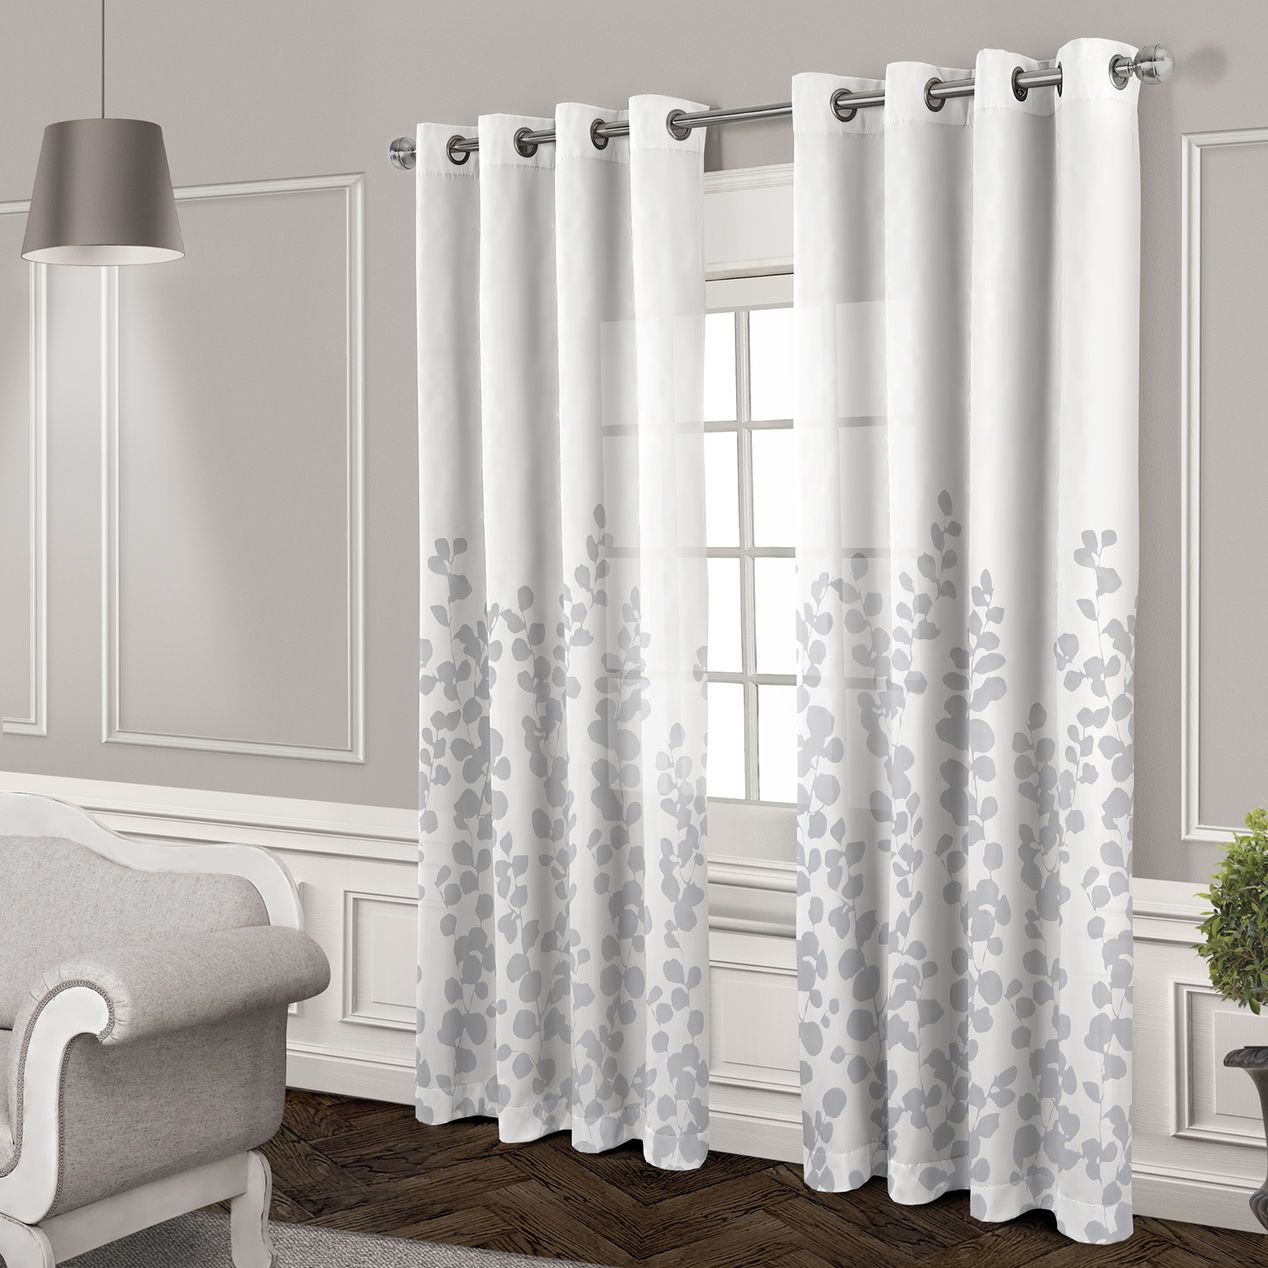 Wilshire Sheer Grommet Curtain Panel White 84 In At Home